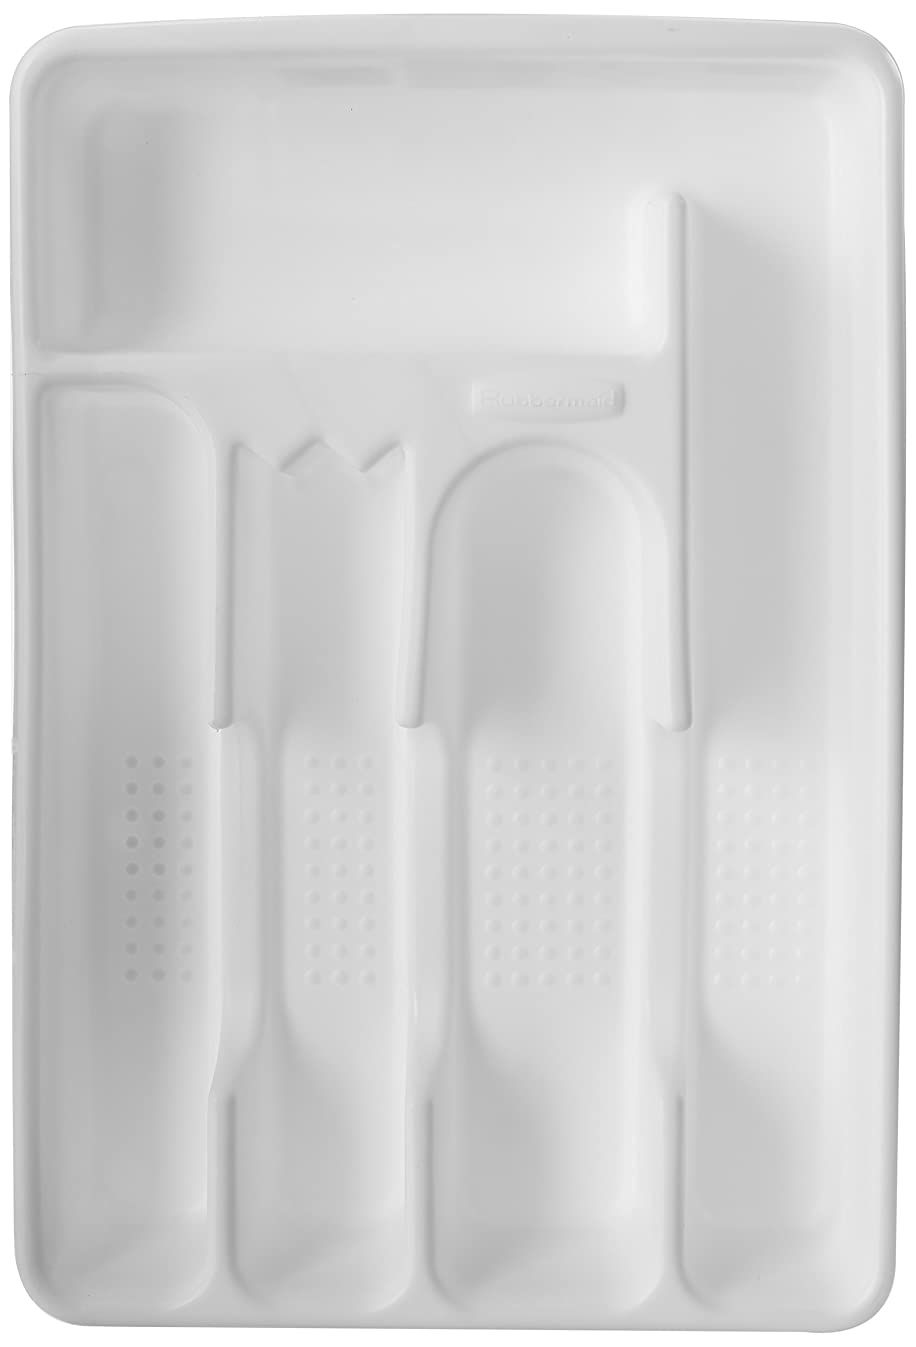 Rubbermaid Cutlery Tray, Small, White FG2919RDWHT